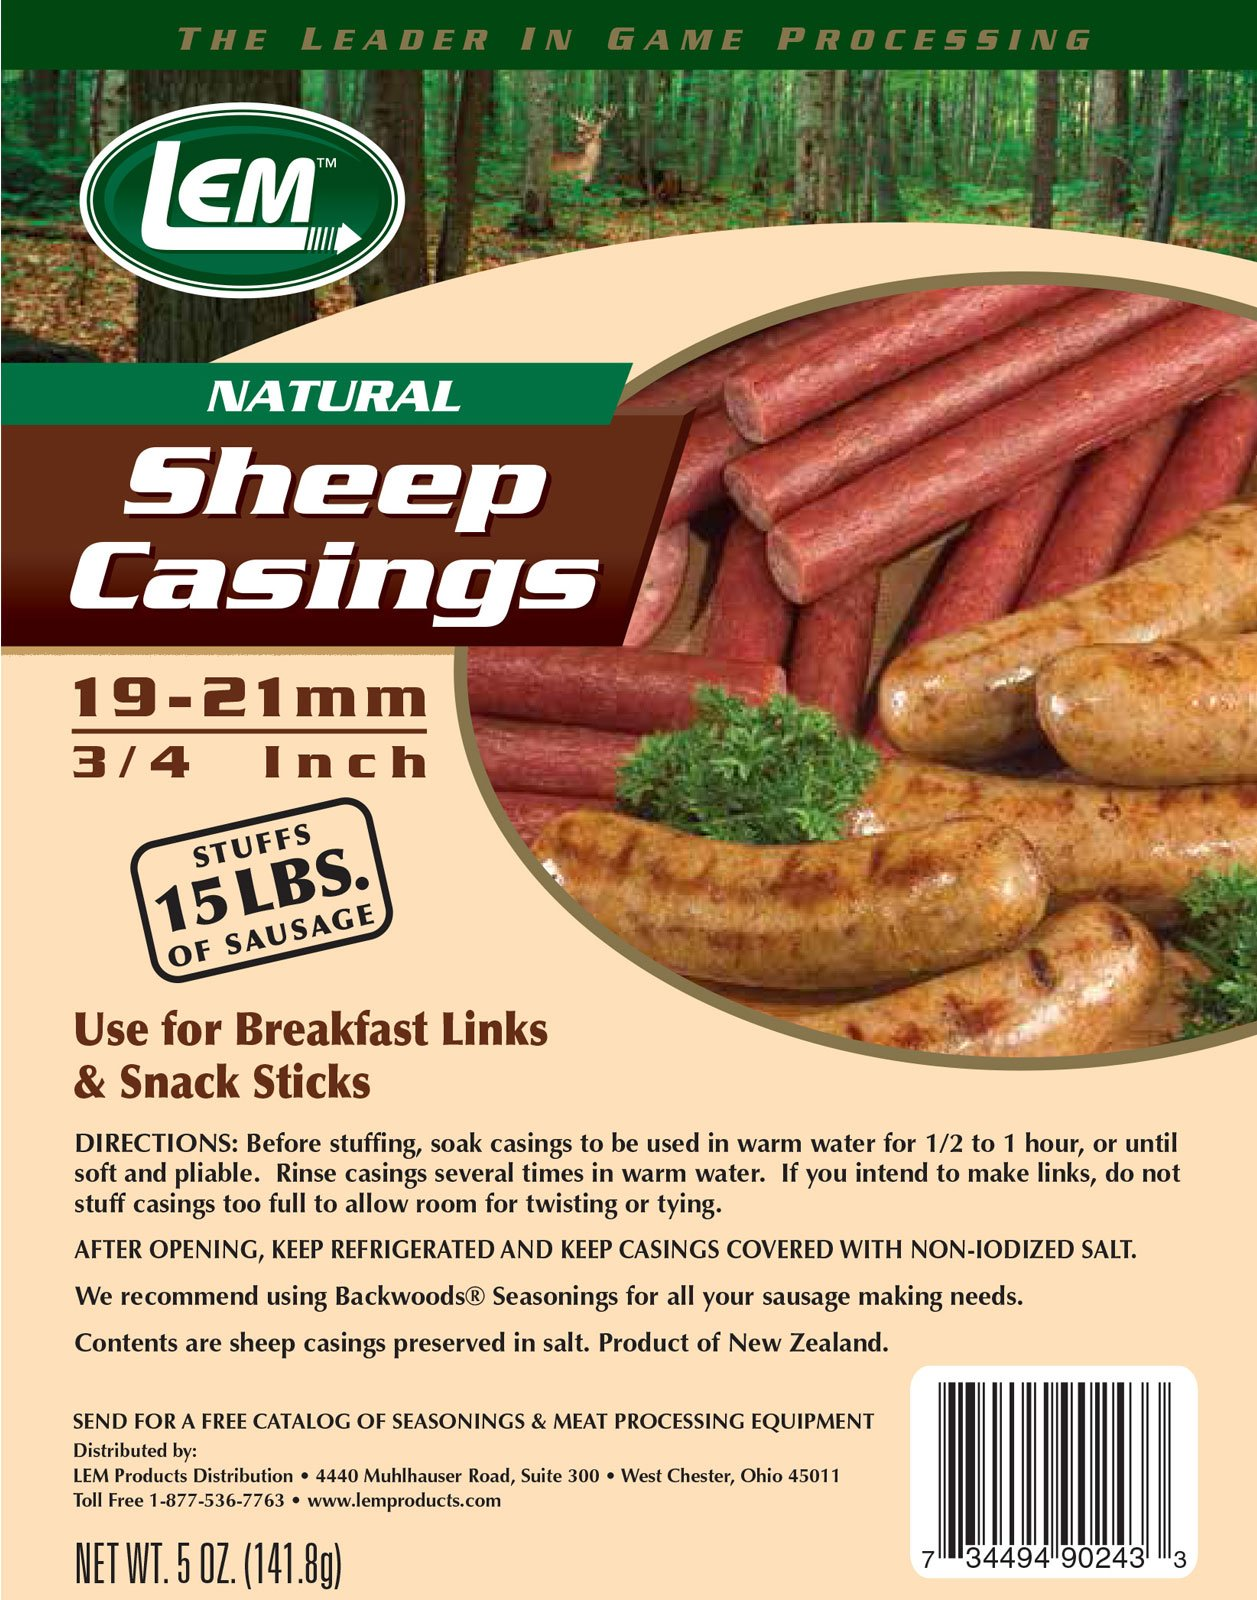 LEM Products 243 5 oz. Vacuum Sealed Bag- Sheep Casings for 15 lbs. Meat